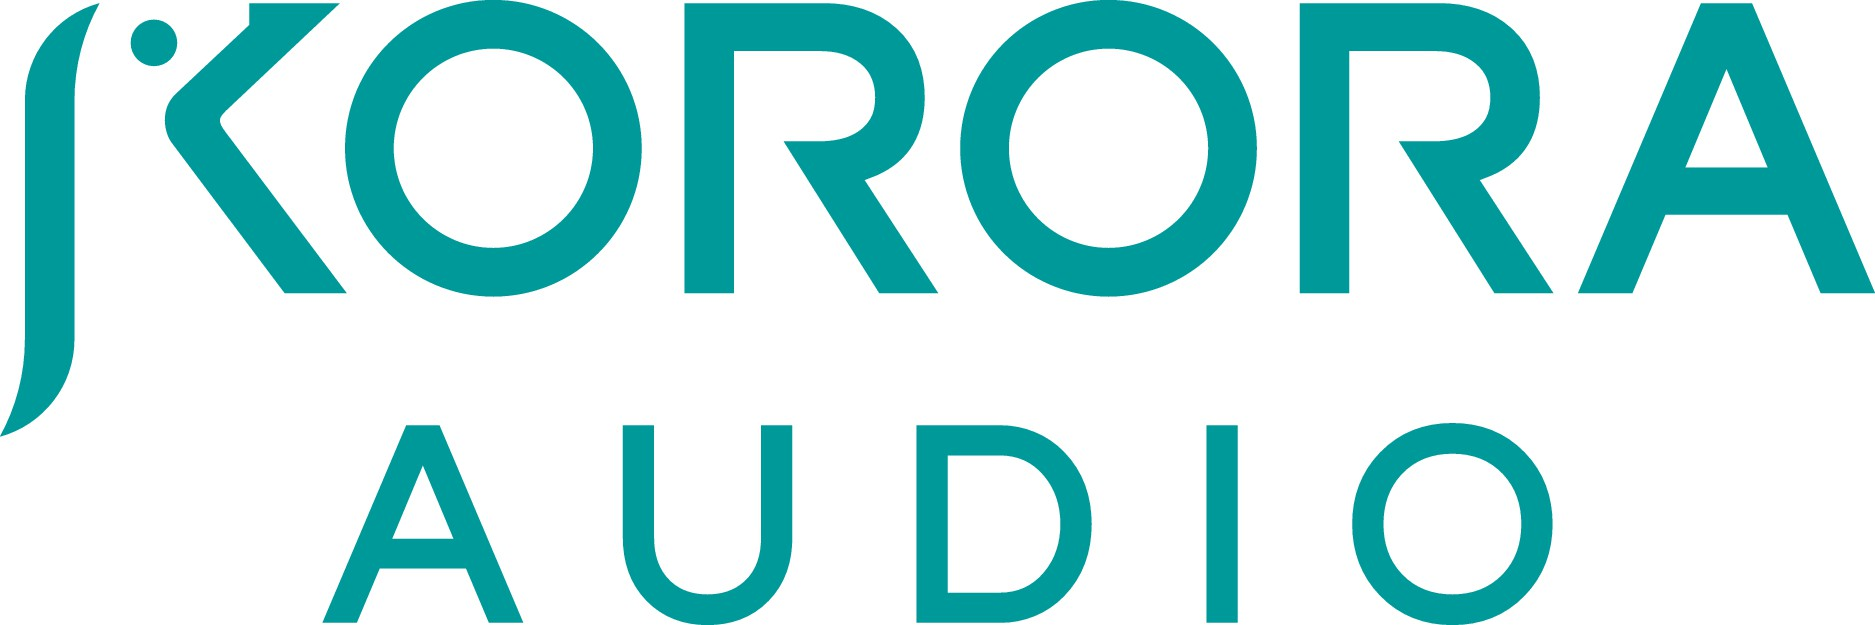 Korora Audio needs compelling logo for music gear